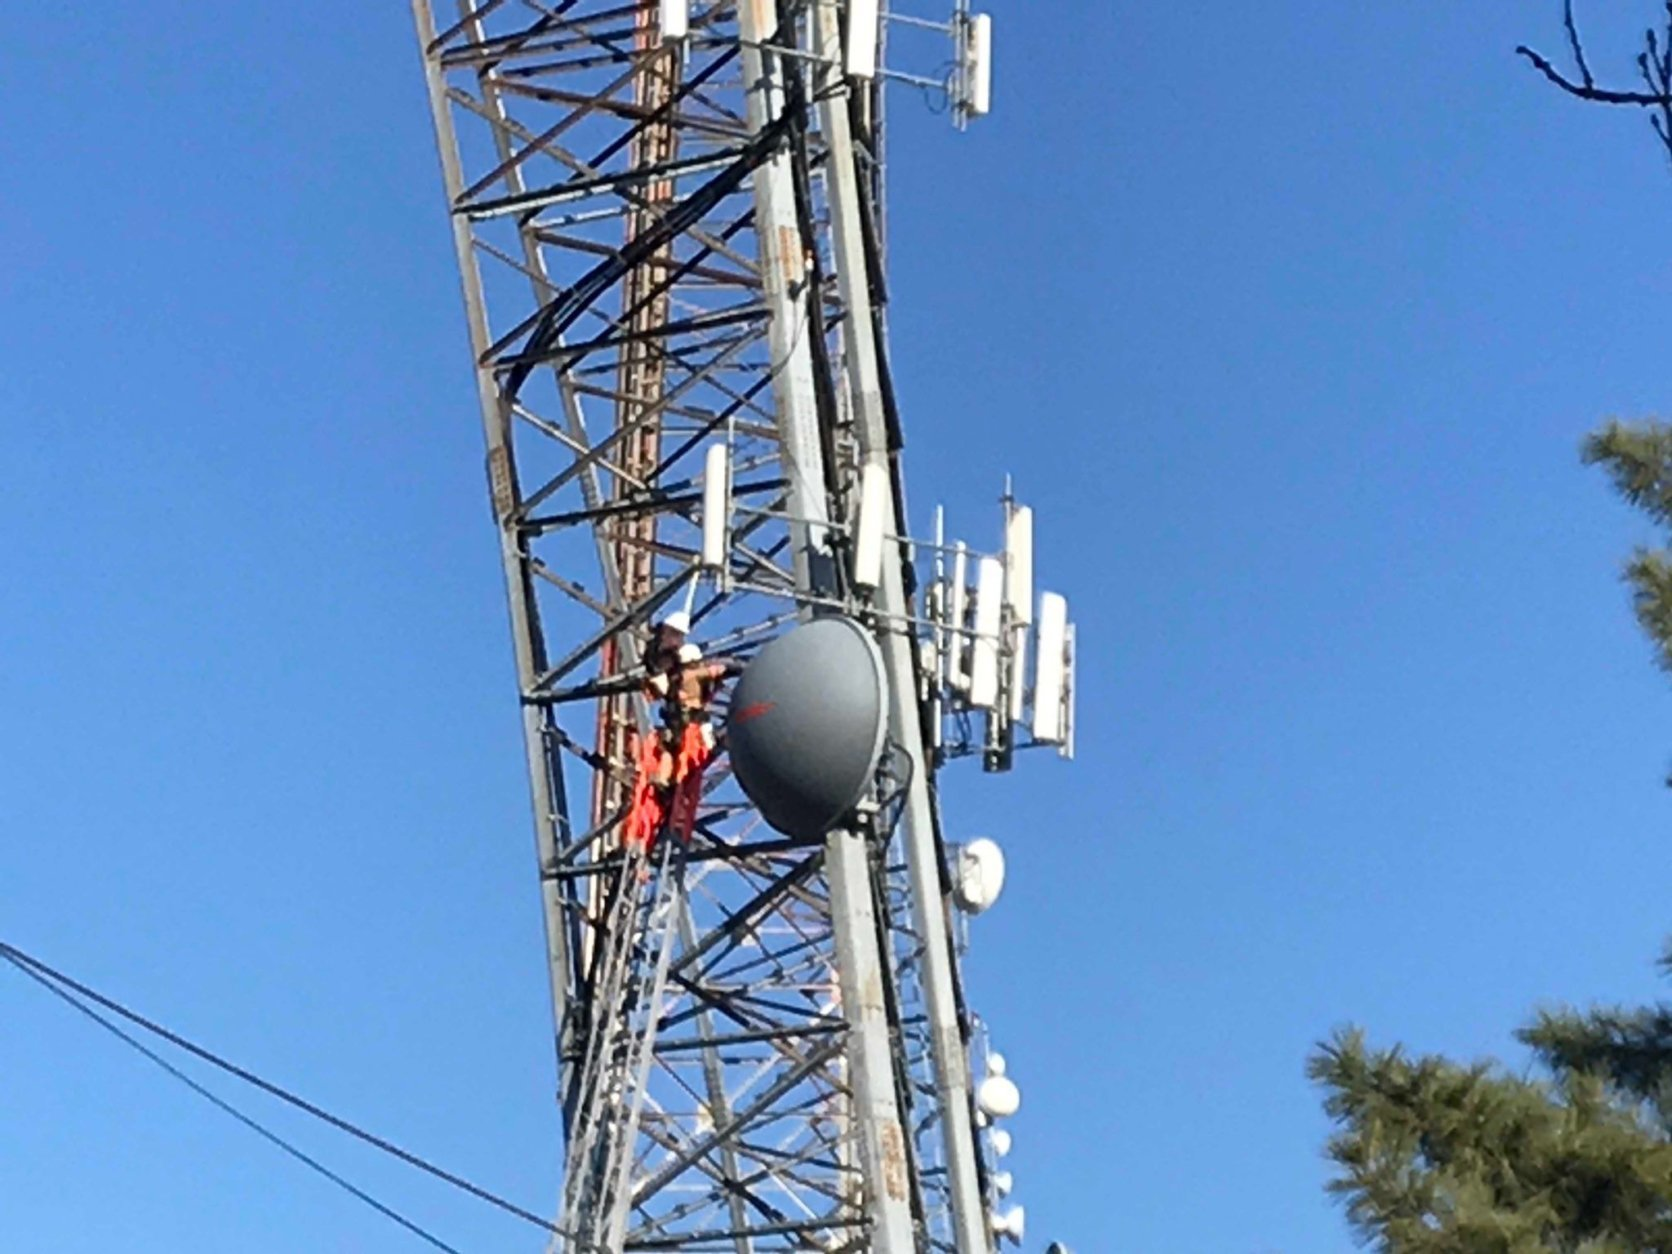 First responders worked Wednesday to rescue a worker stuck on a radio tower. (WTOP/Dick Uliano)